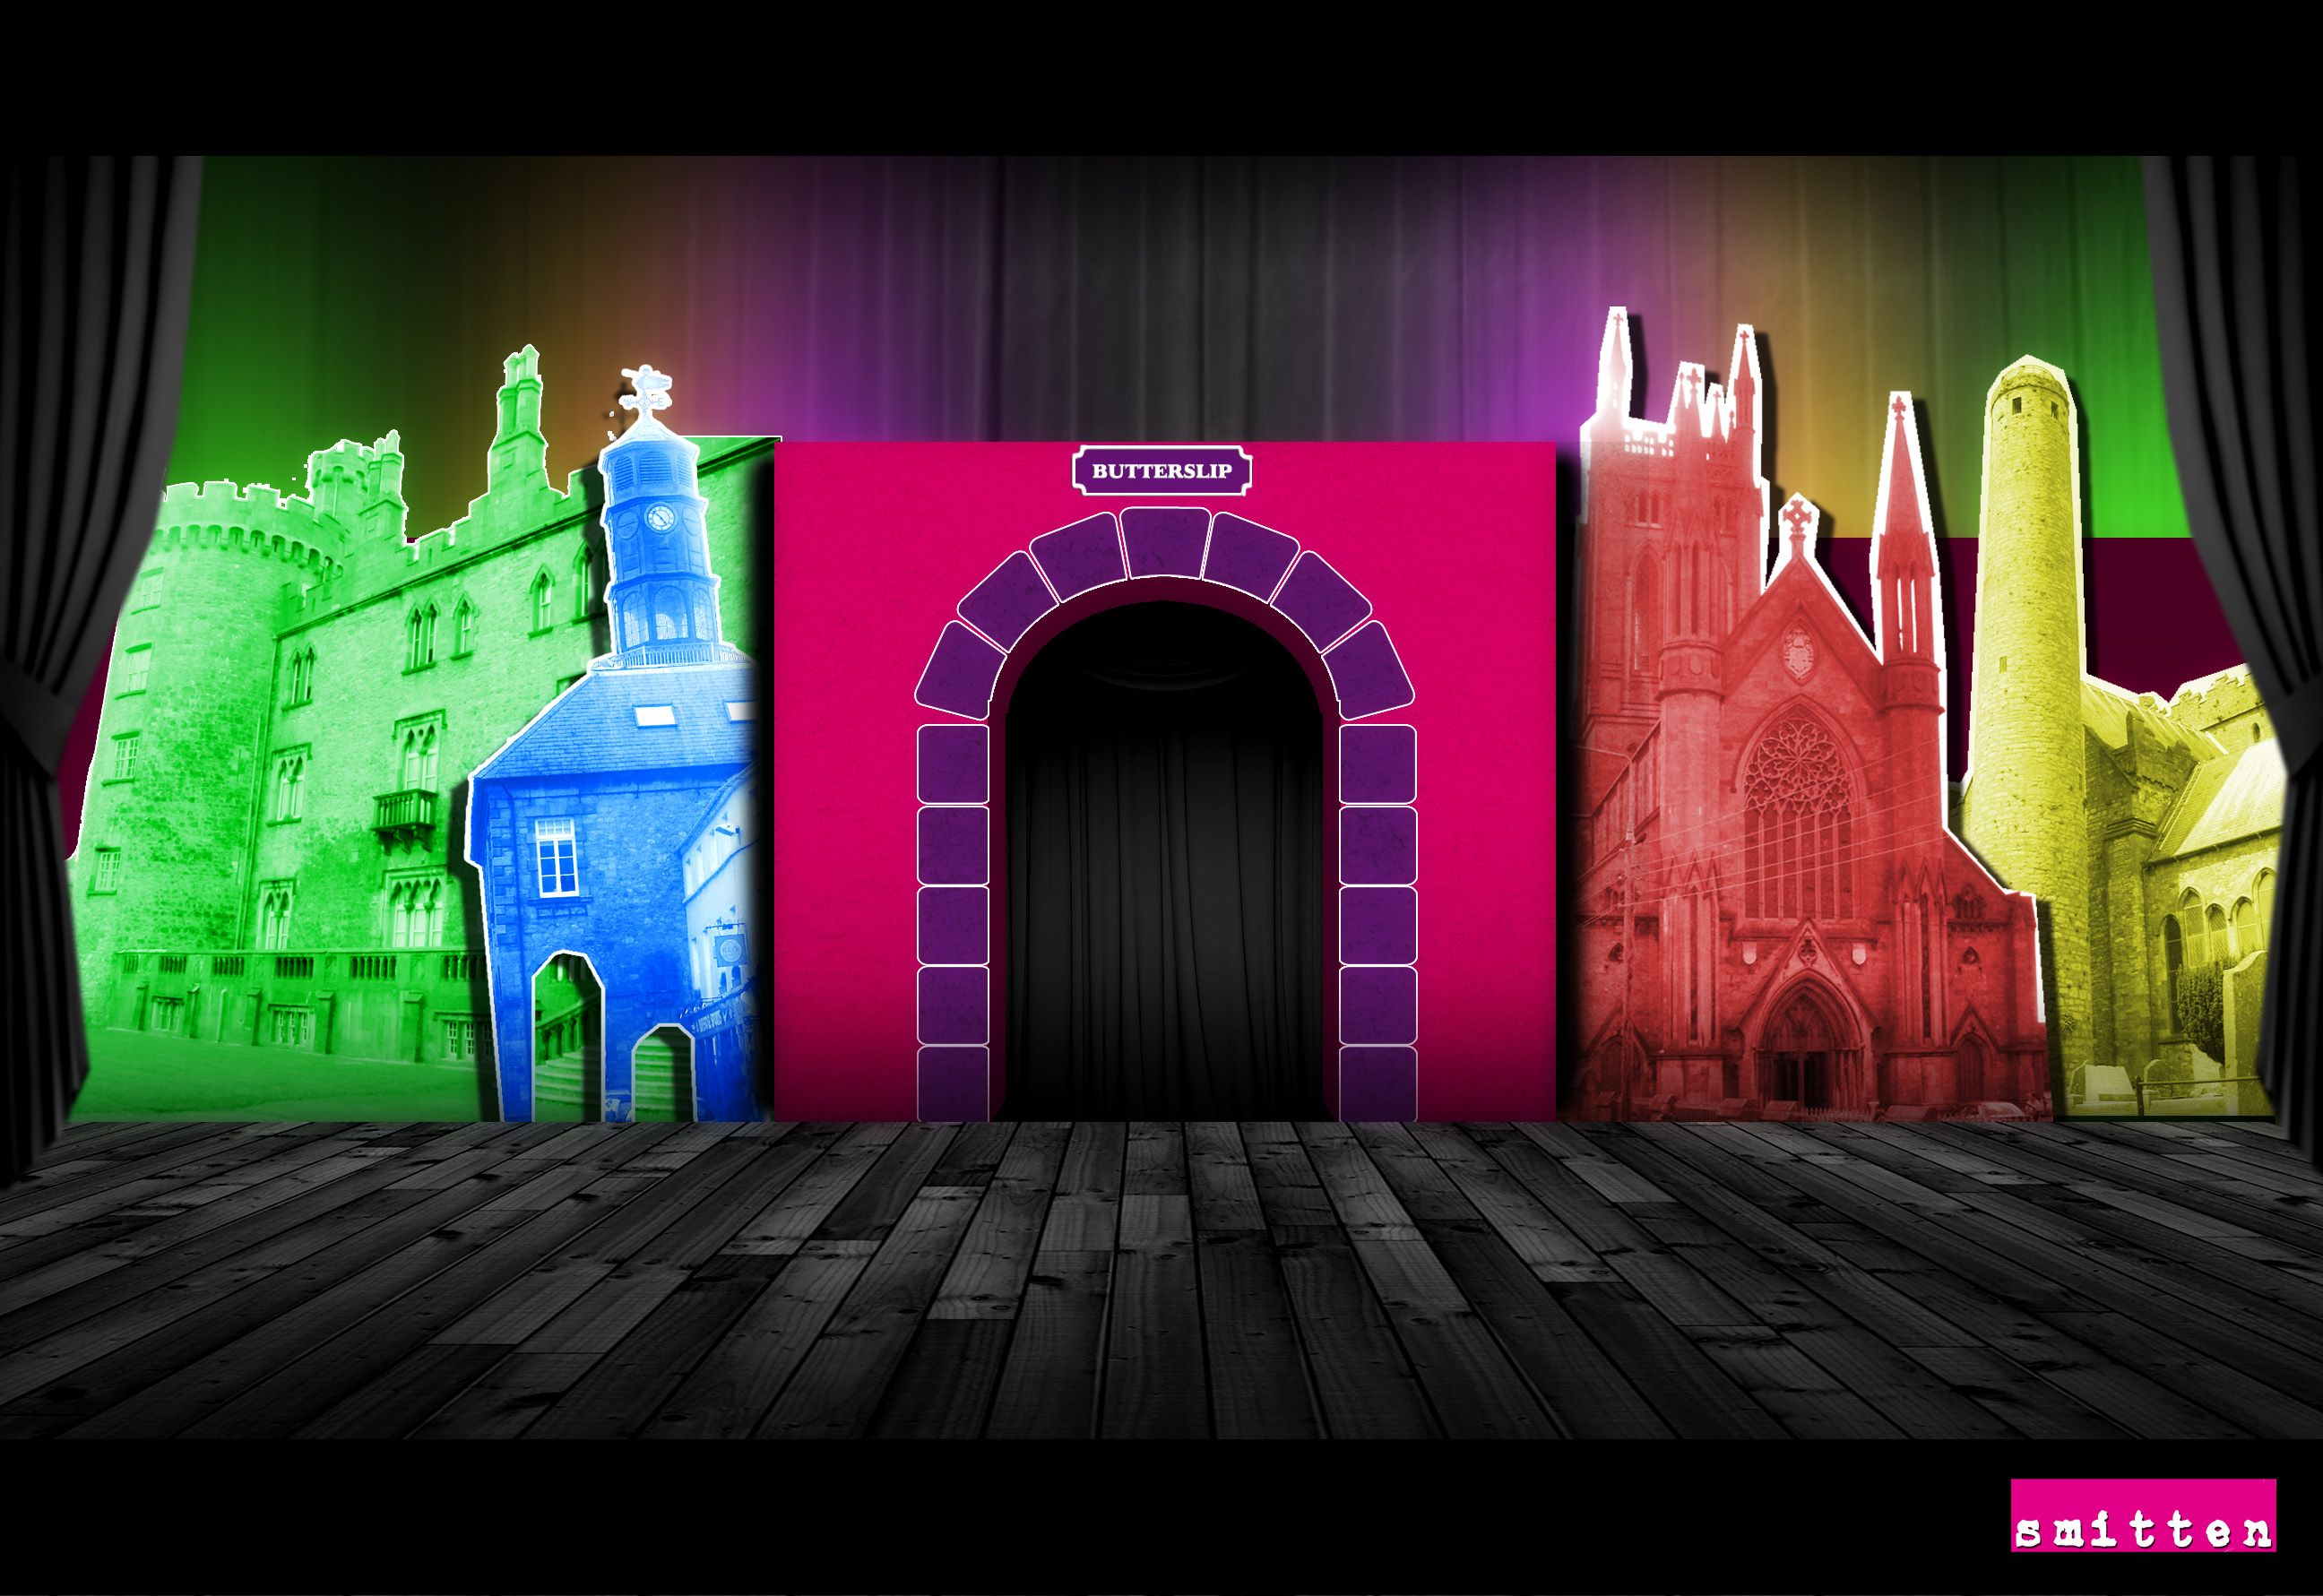 stage set designs - Google Search | Theatre and Event Set ...